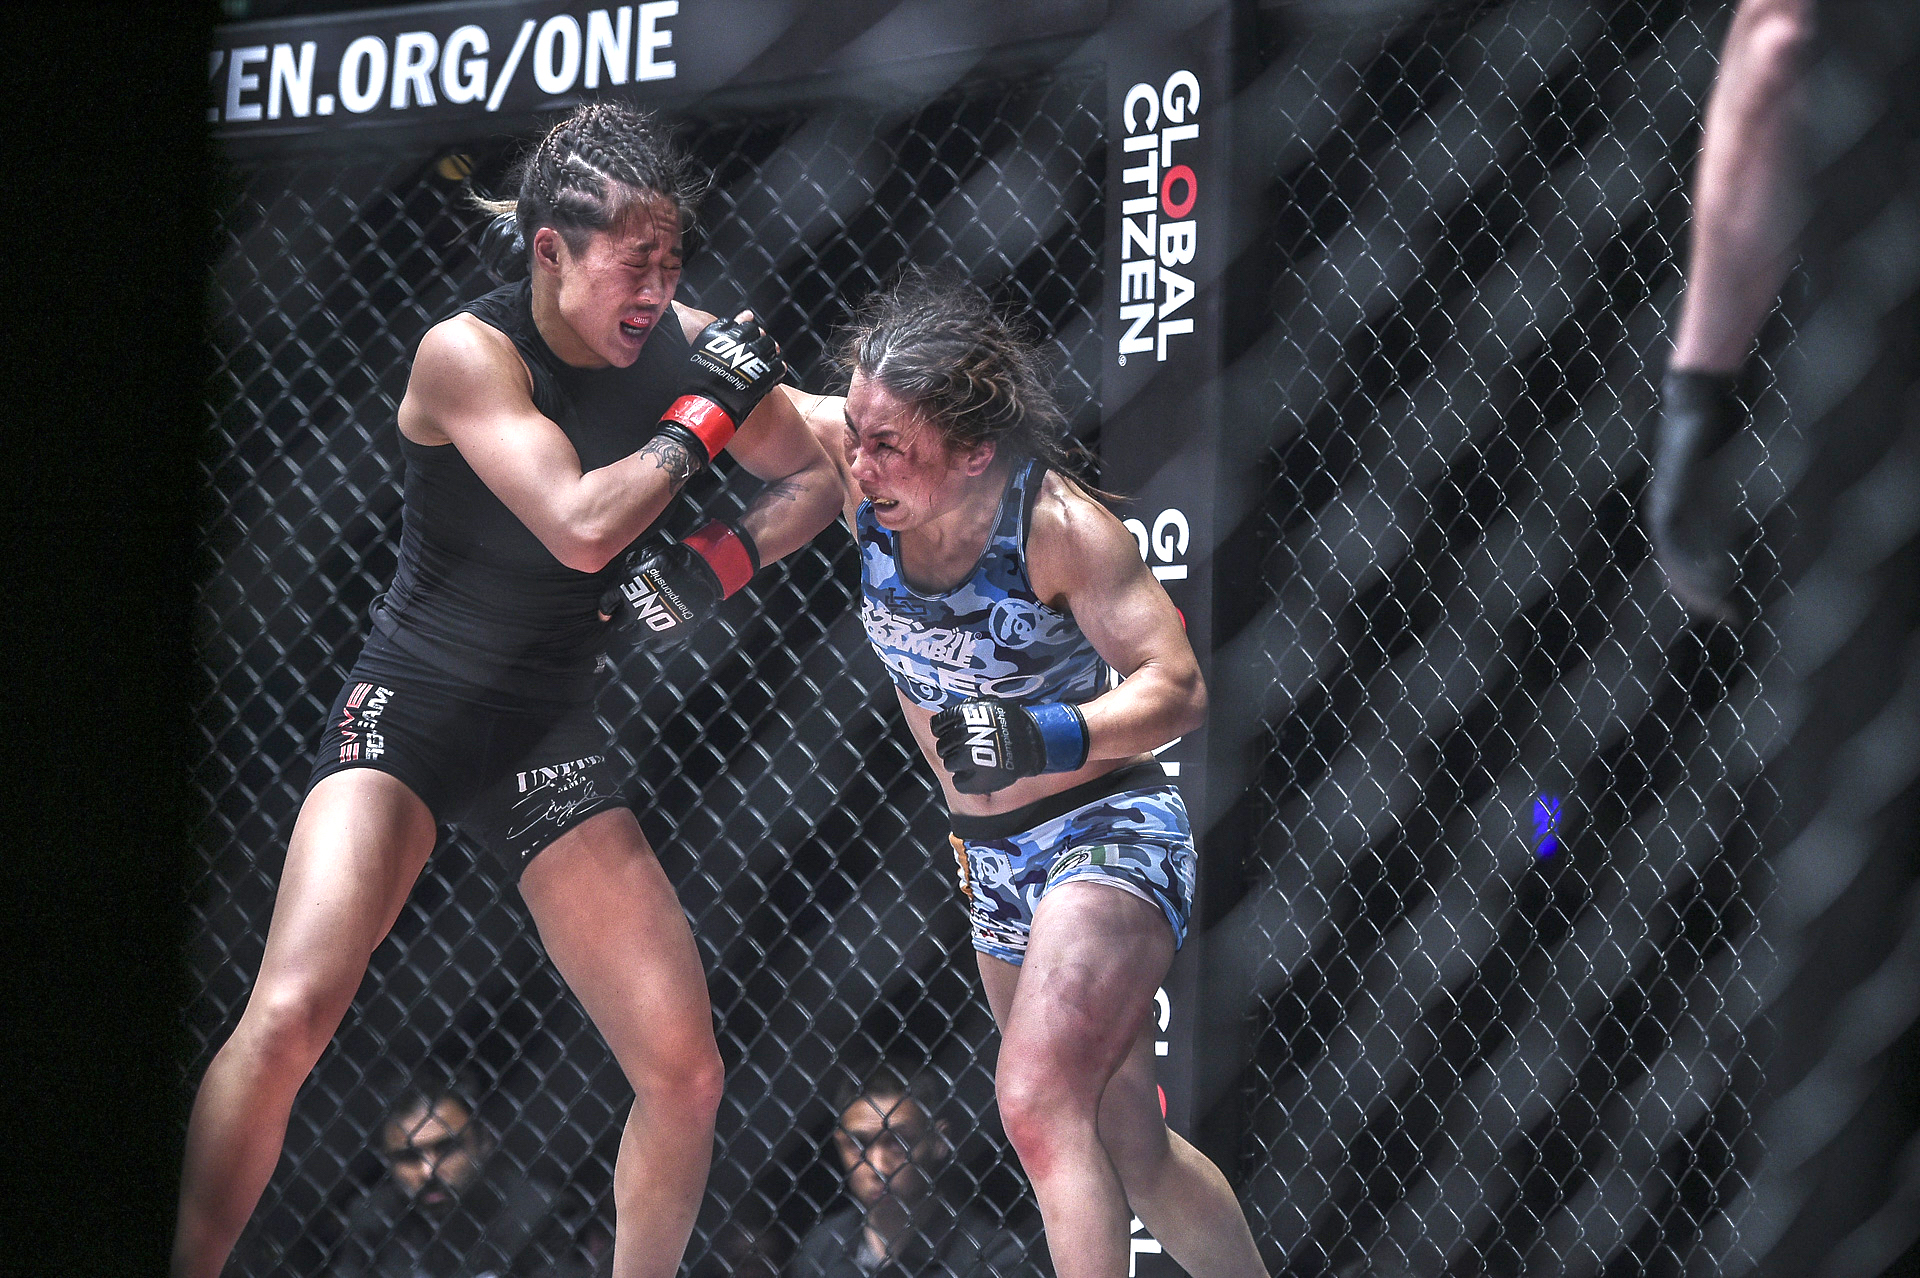 Mei 'V.V' Yamaguchi (right) throws a punch at champion Angela Lee during their ONE Championship atomweight title match on May 18 at Singapore Indoor Stadium | ONE CHAMPIONSHIP